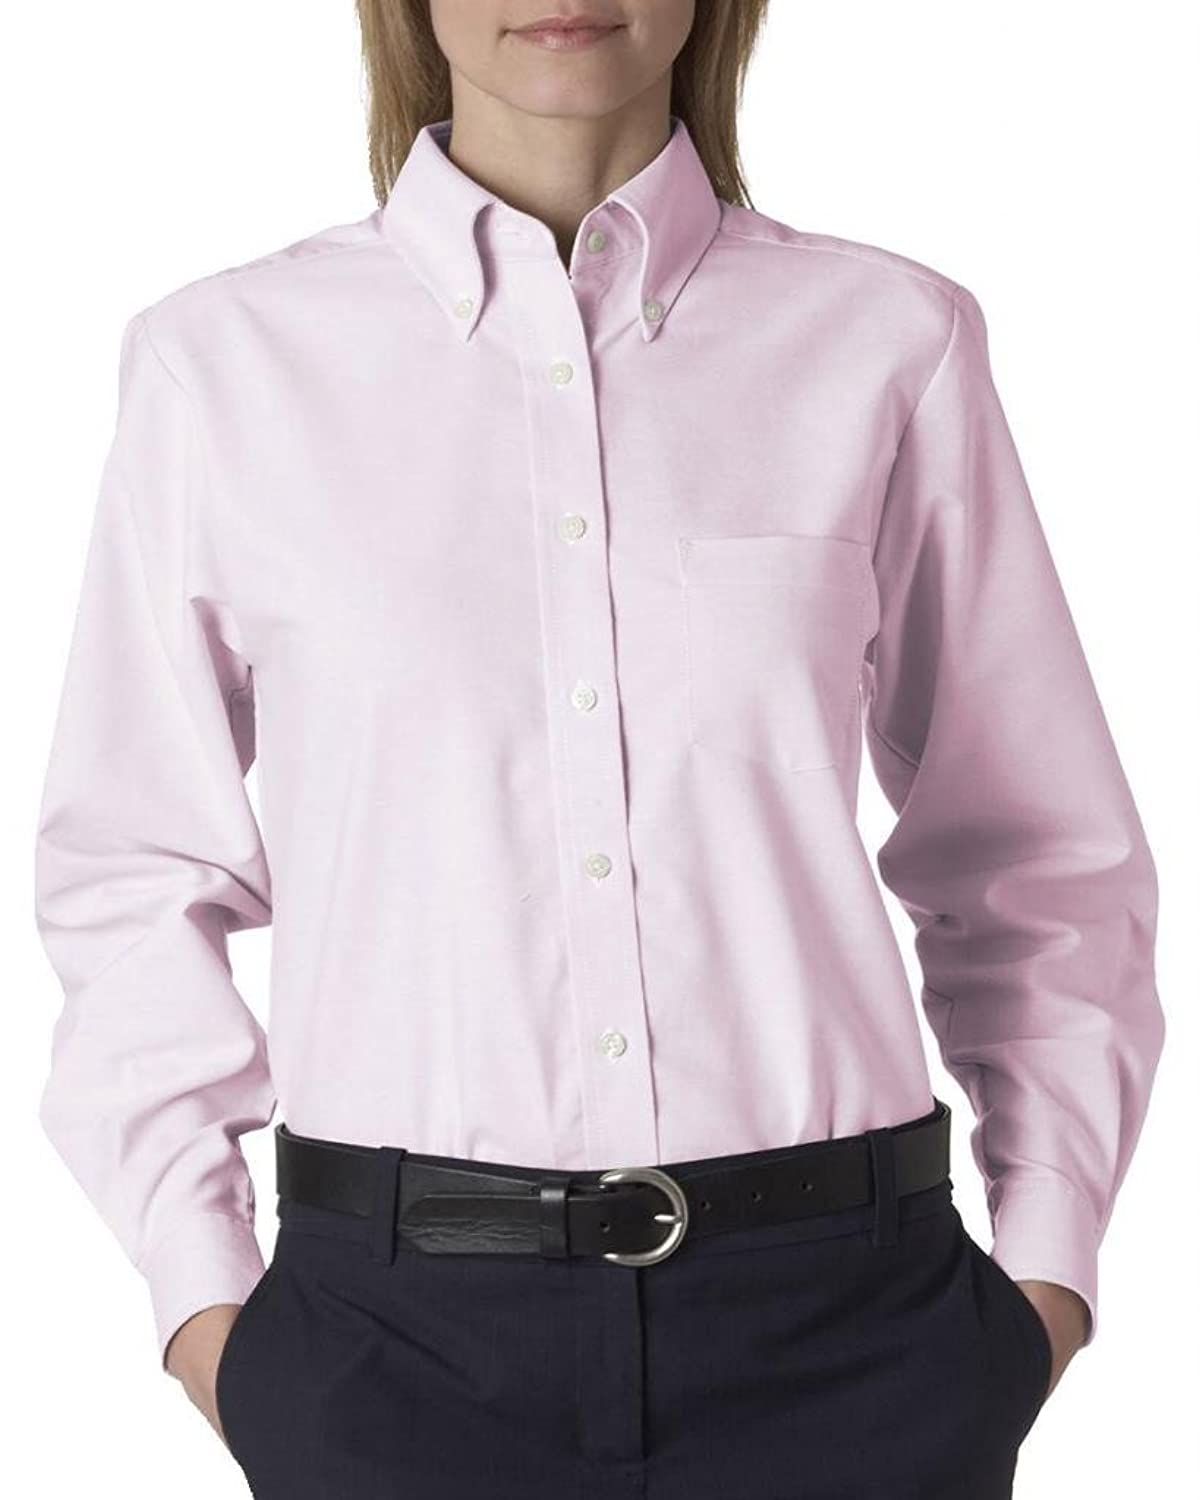 Long sleeve white button down shirt custom shirt for Wrinkle free dress shirts amazon